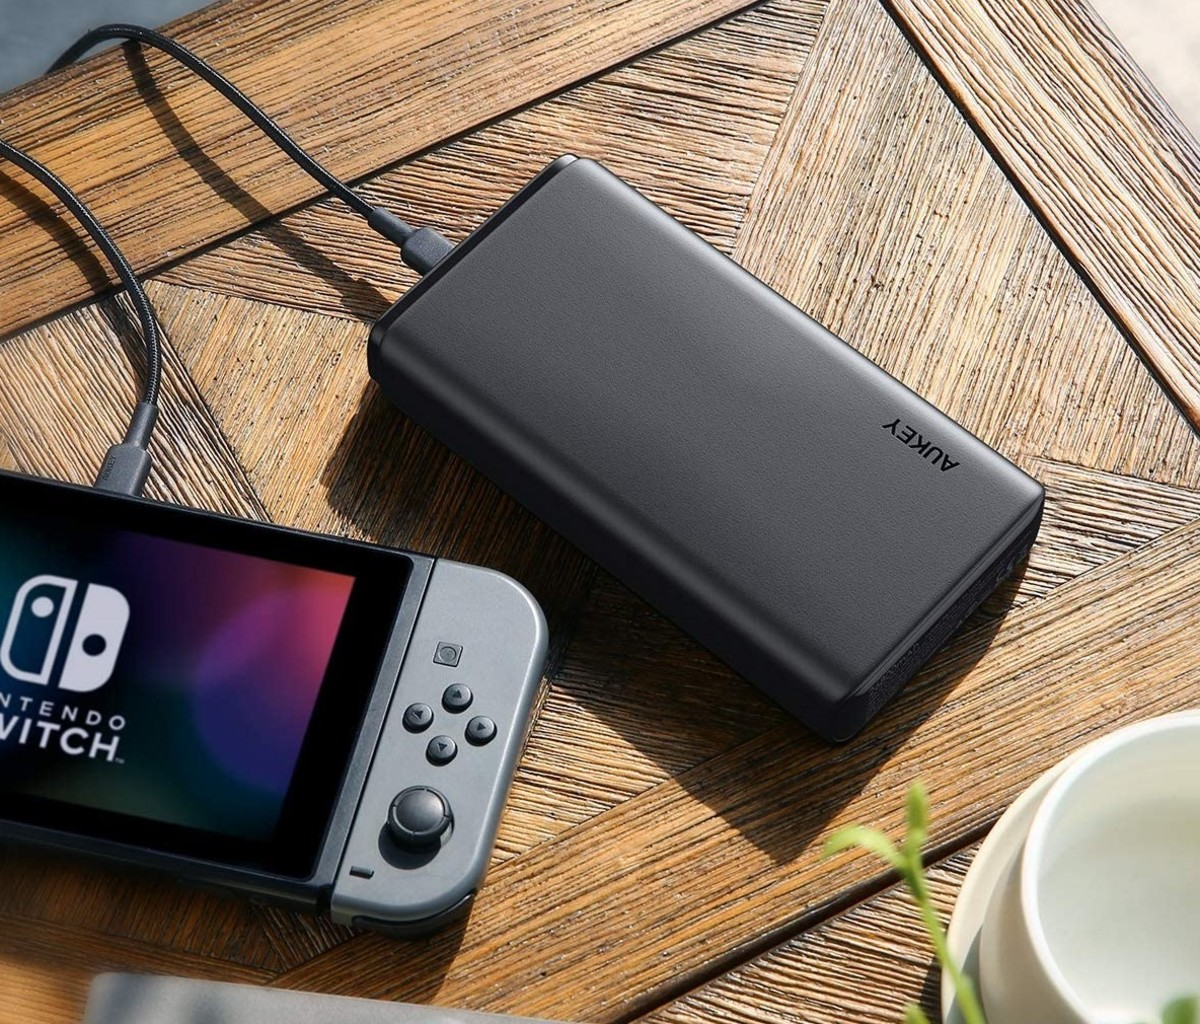 Aukey 26800mAh Universal Power Bank With Nintendo Switch